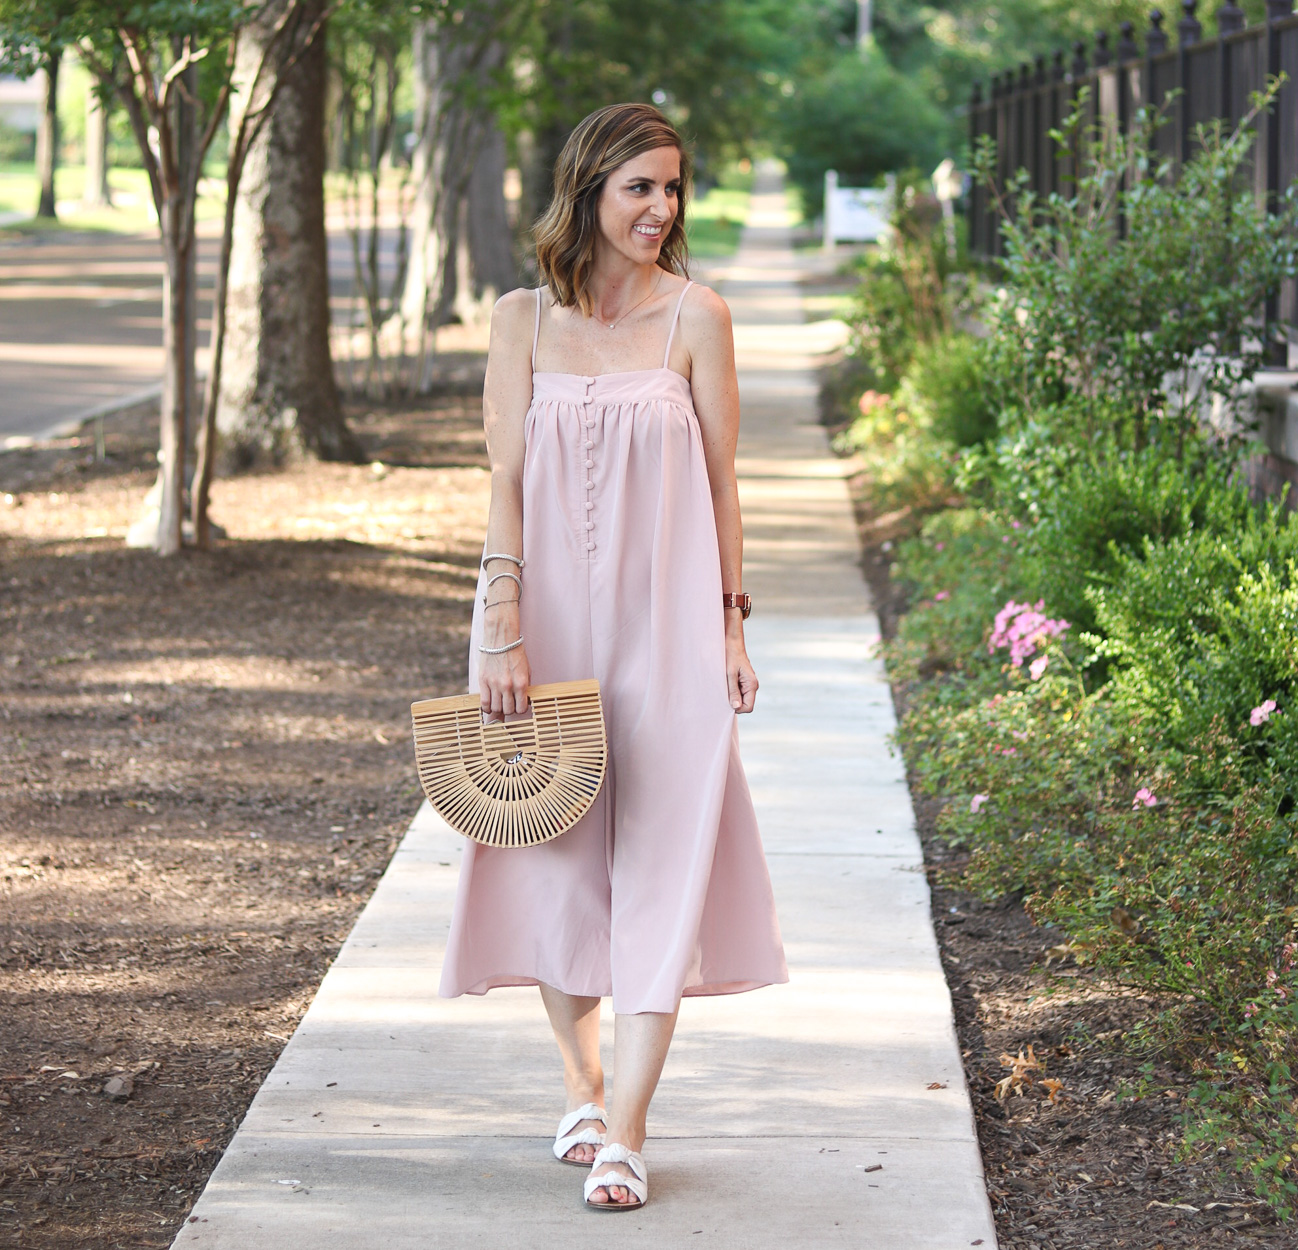 The Blush Jumpsuit You Need In Your Closet